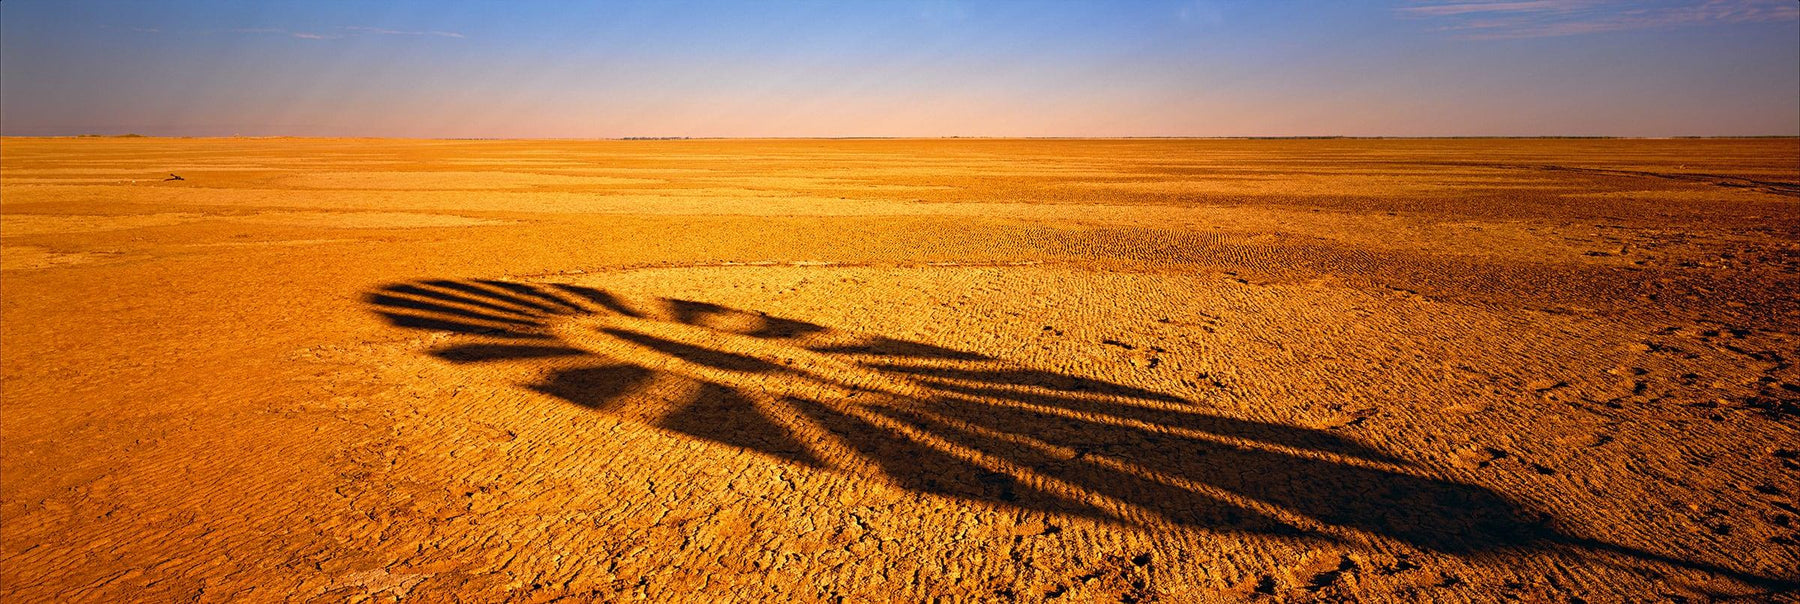 Shadow of a windmill blades being cast onto the dry desert floor in Normanton Australia